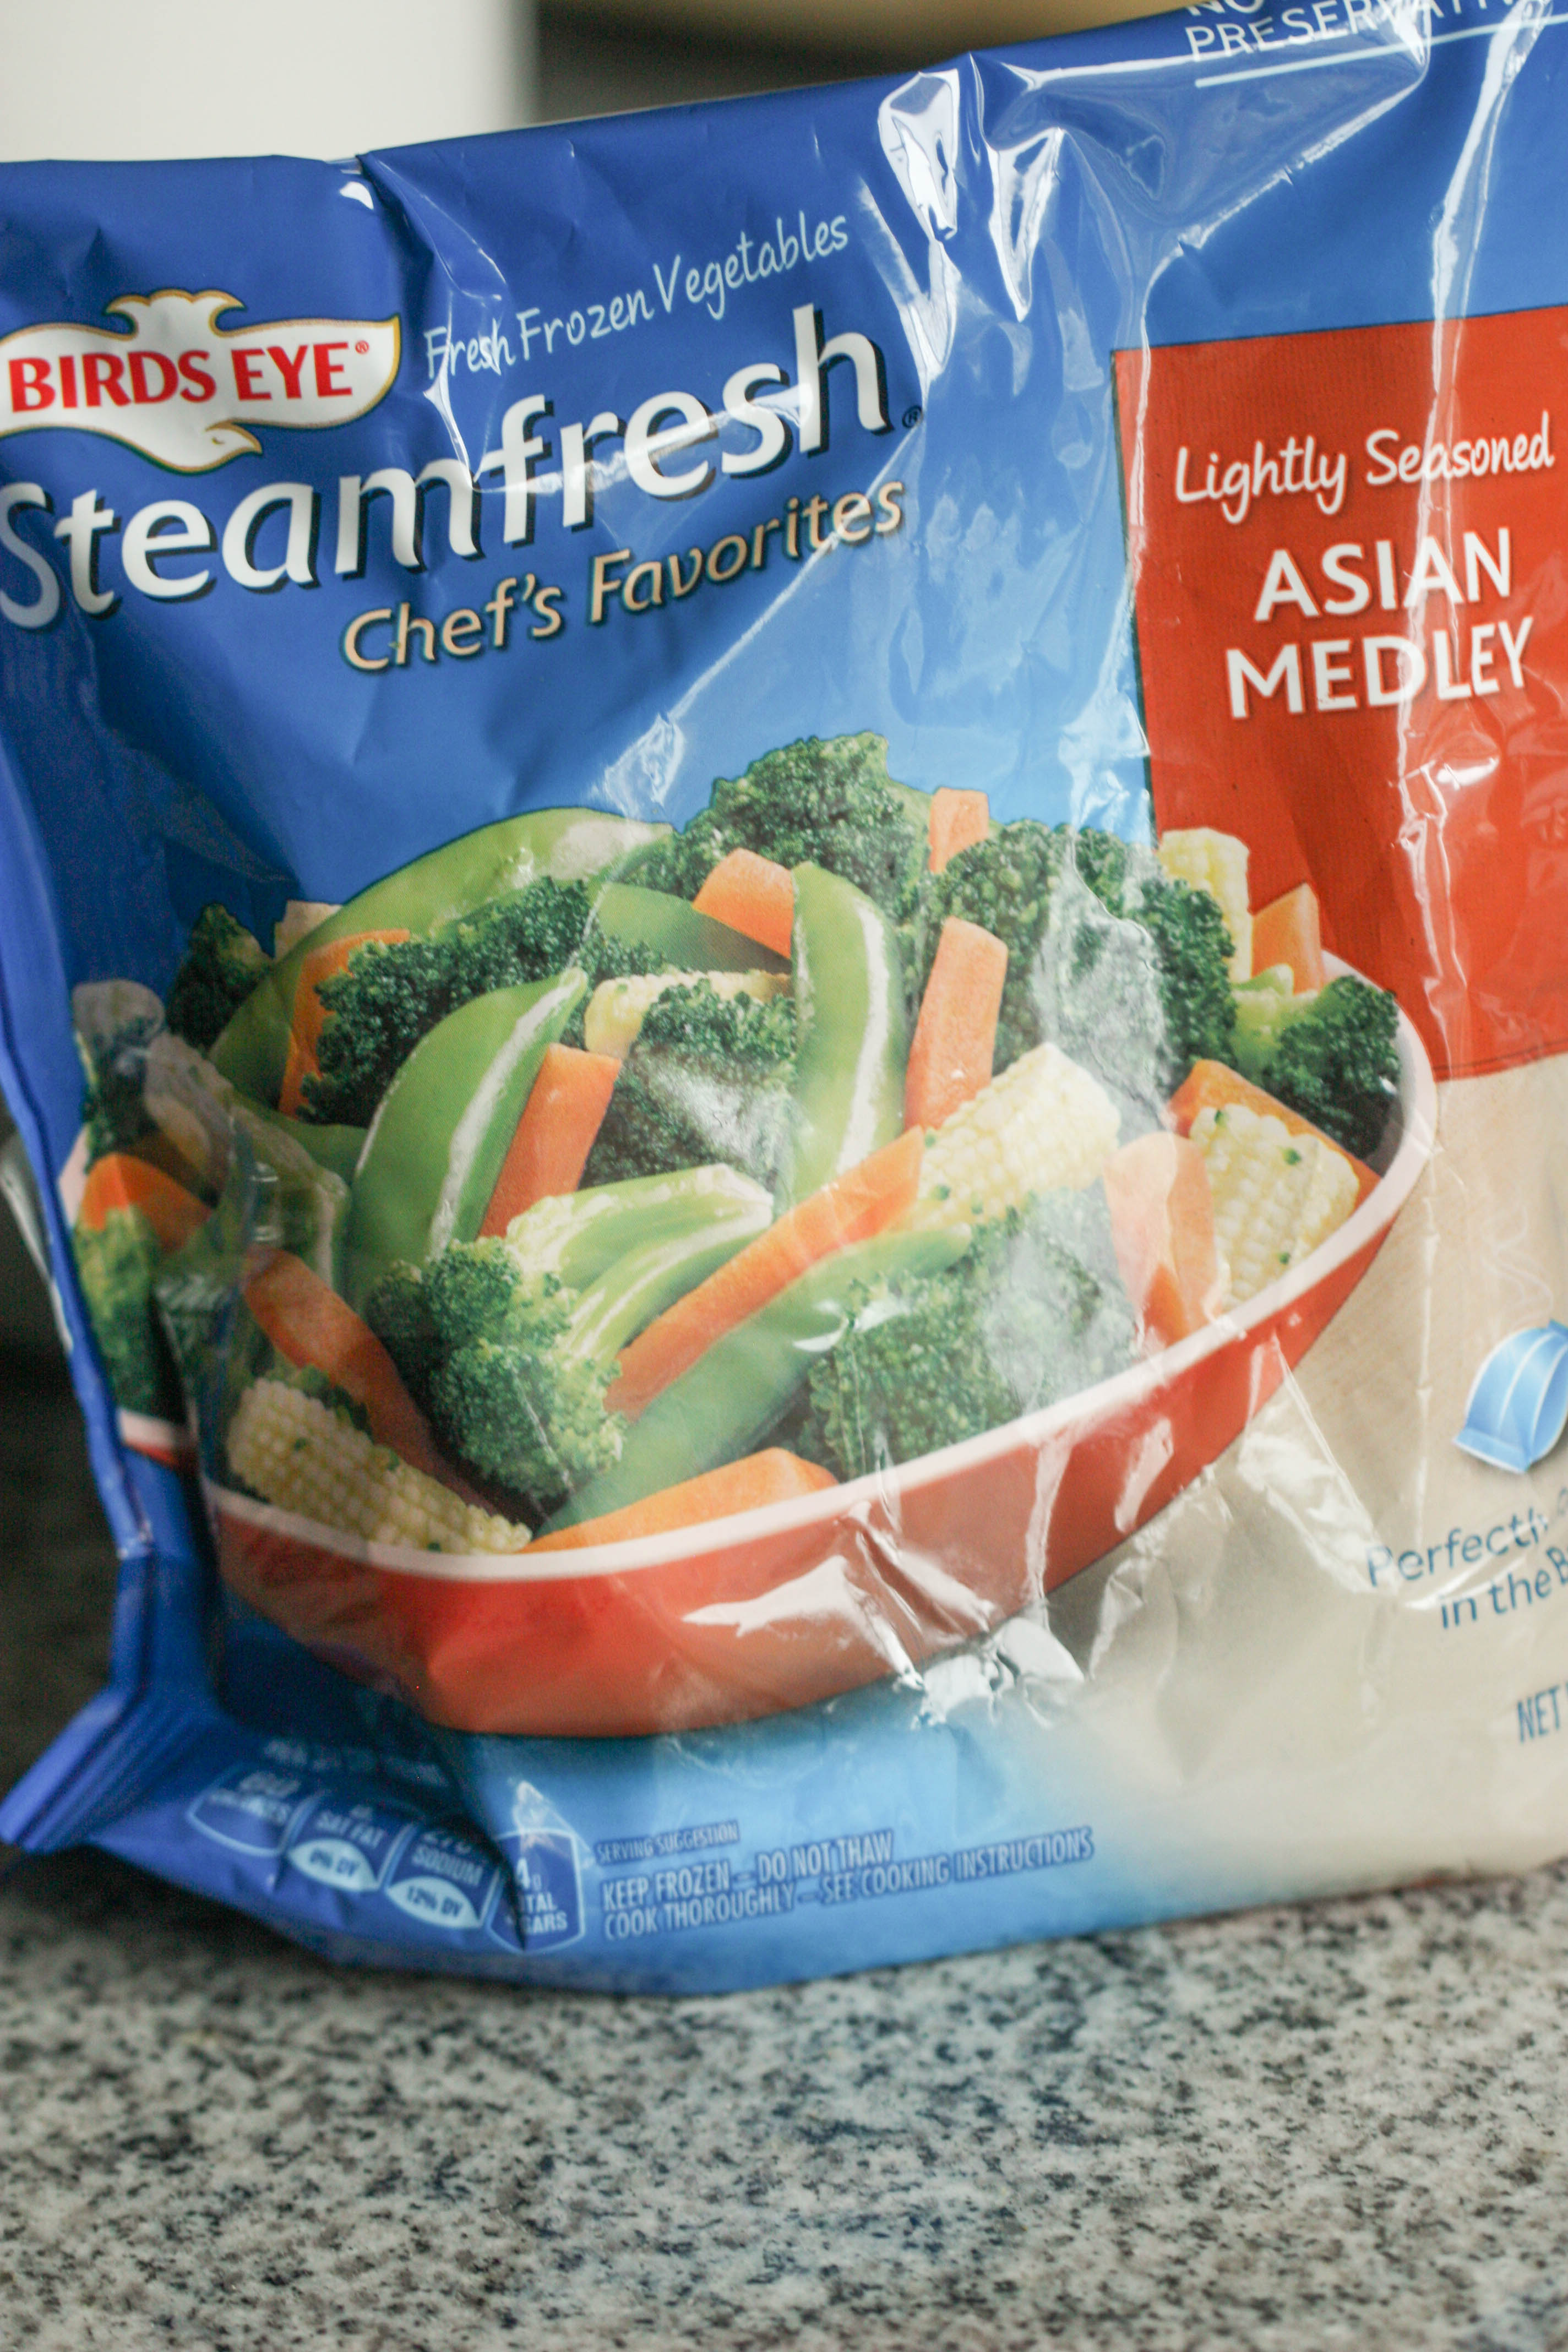 a bag of frozen, microwaveable stir fry veggies that can be used in this recipe